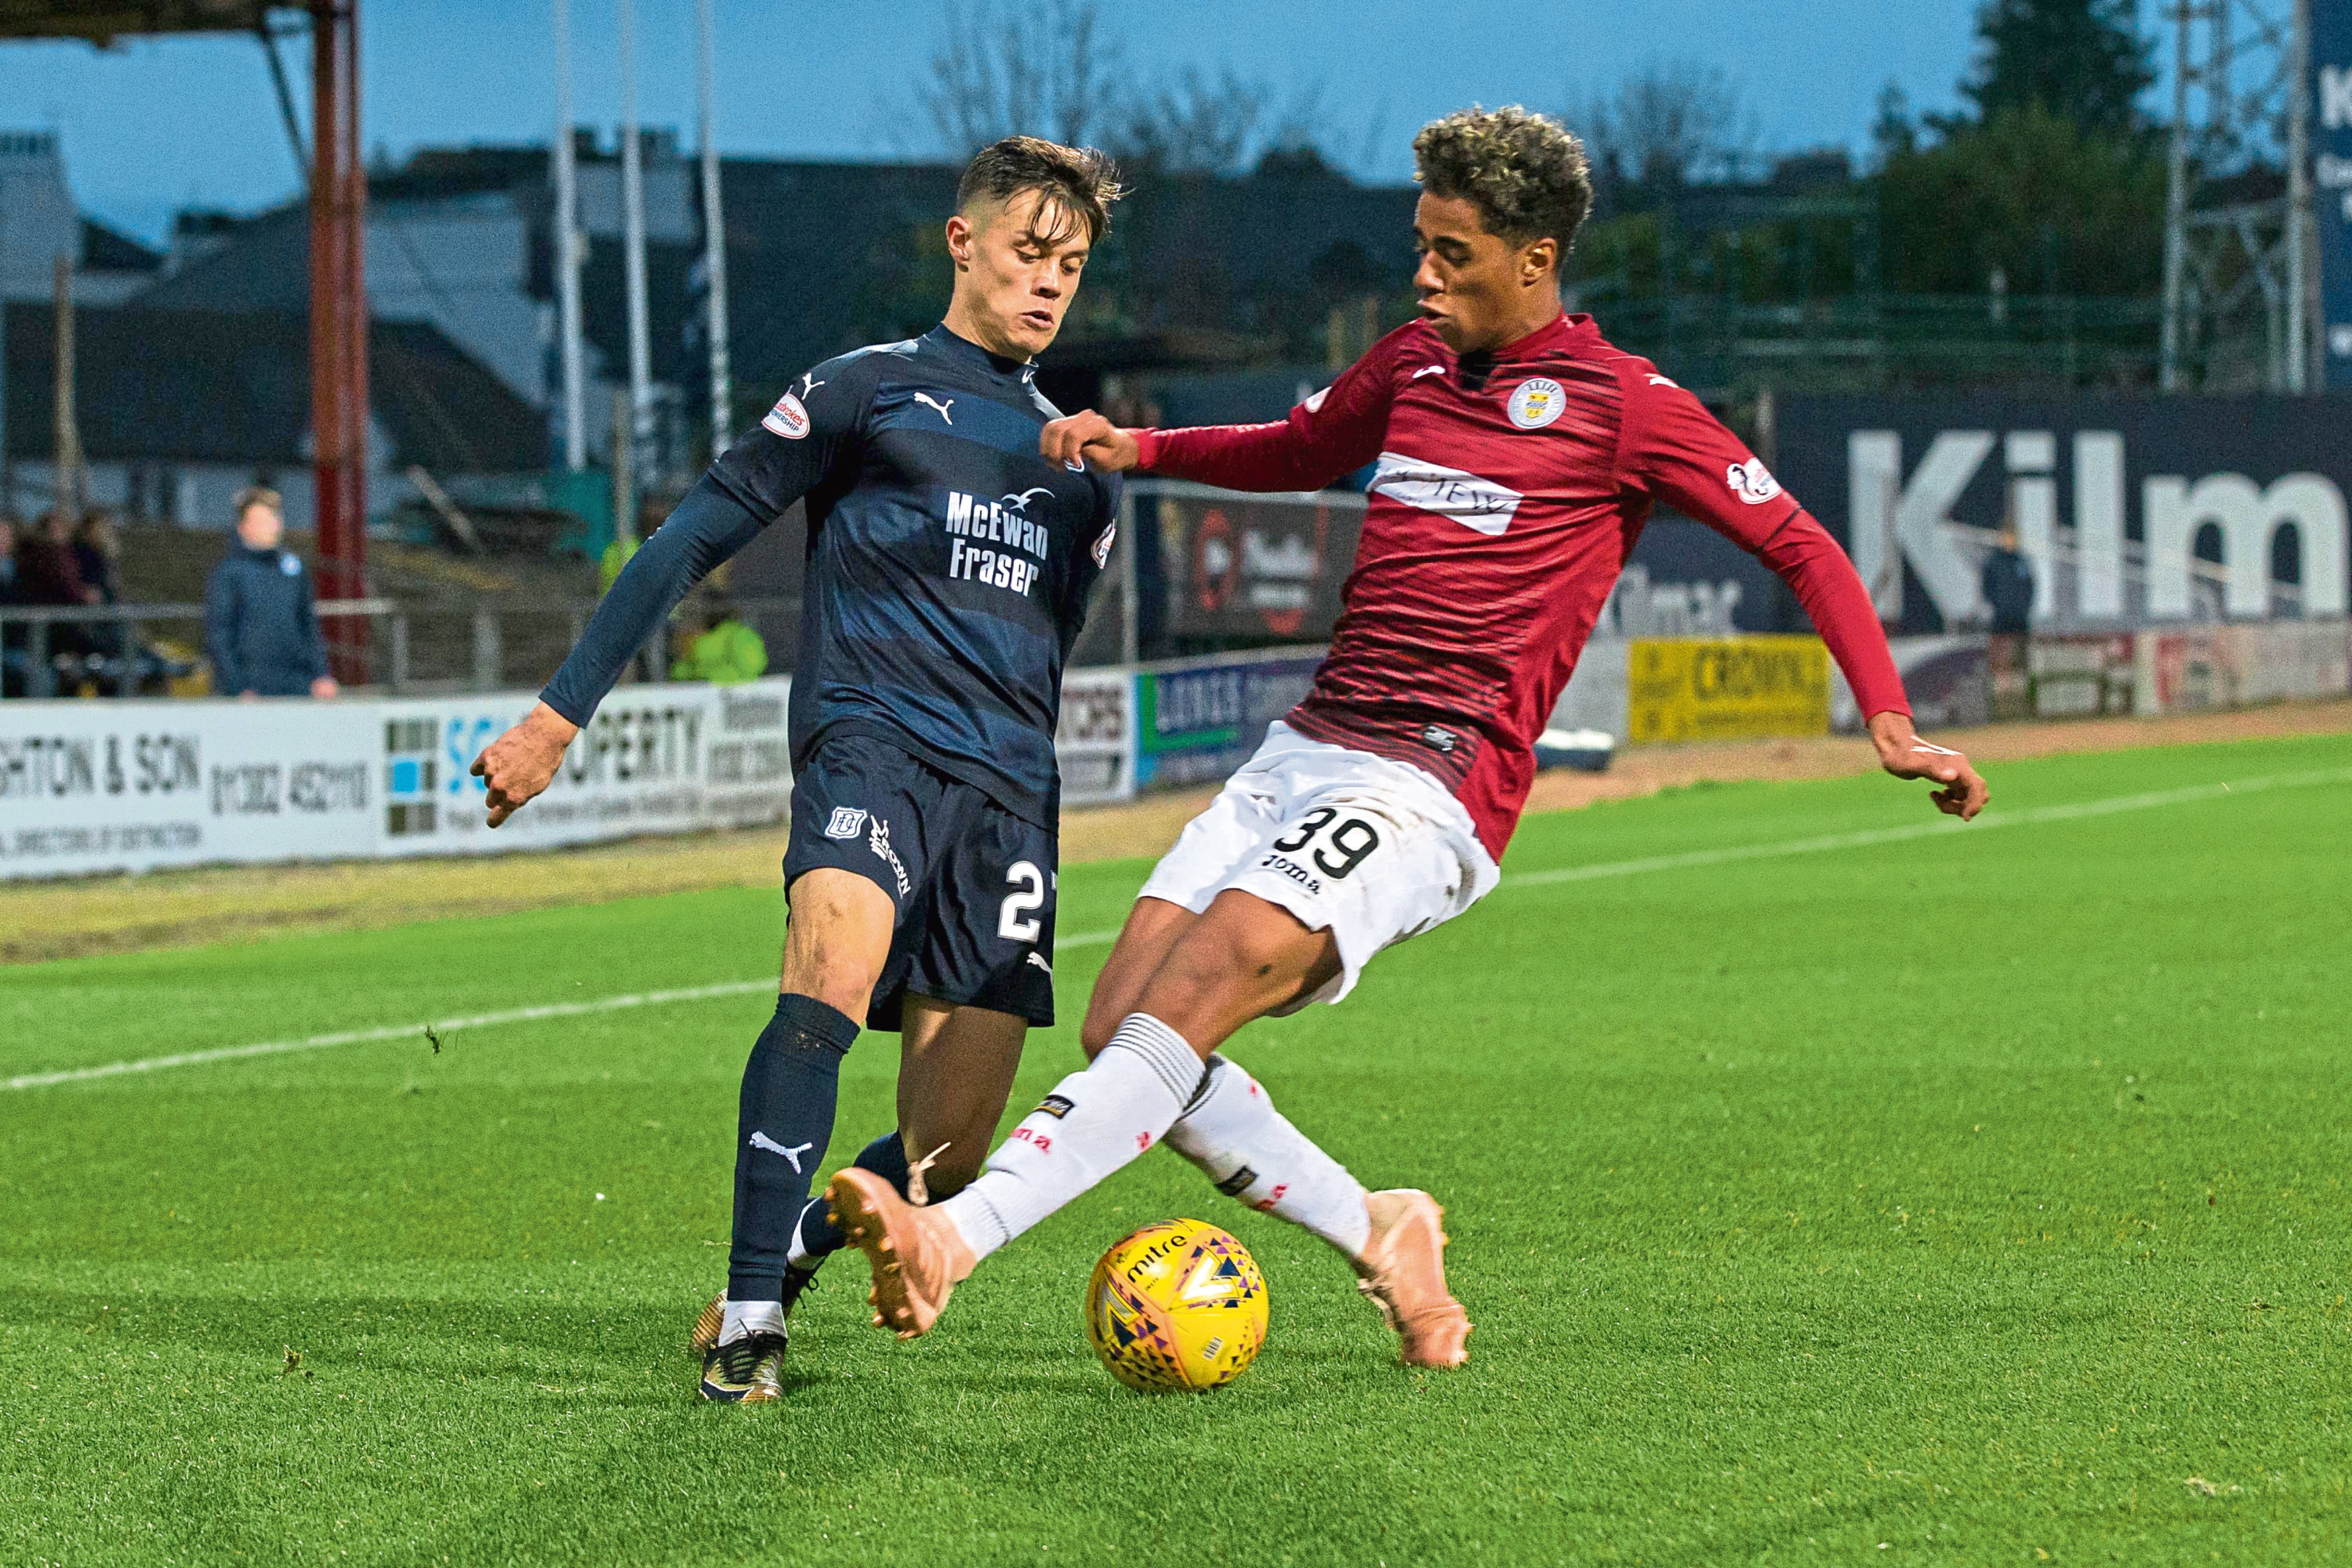 Dundee youngster Jesse Curran has featured 16 times for the Dark Blues this campaign and has impressed manager Jim McIntyre.